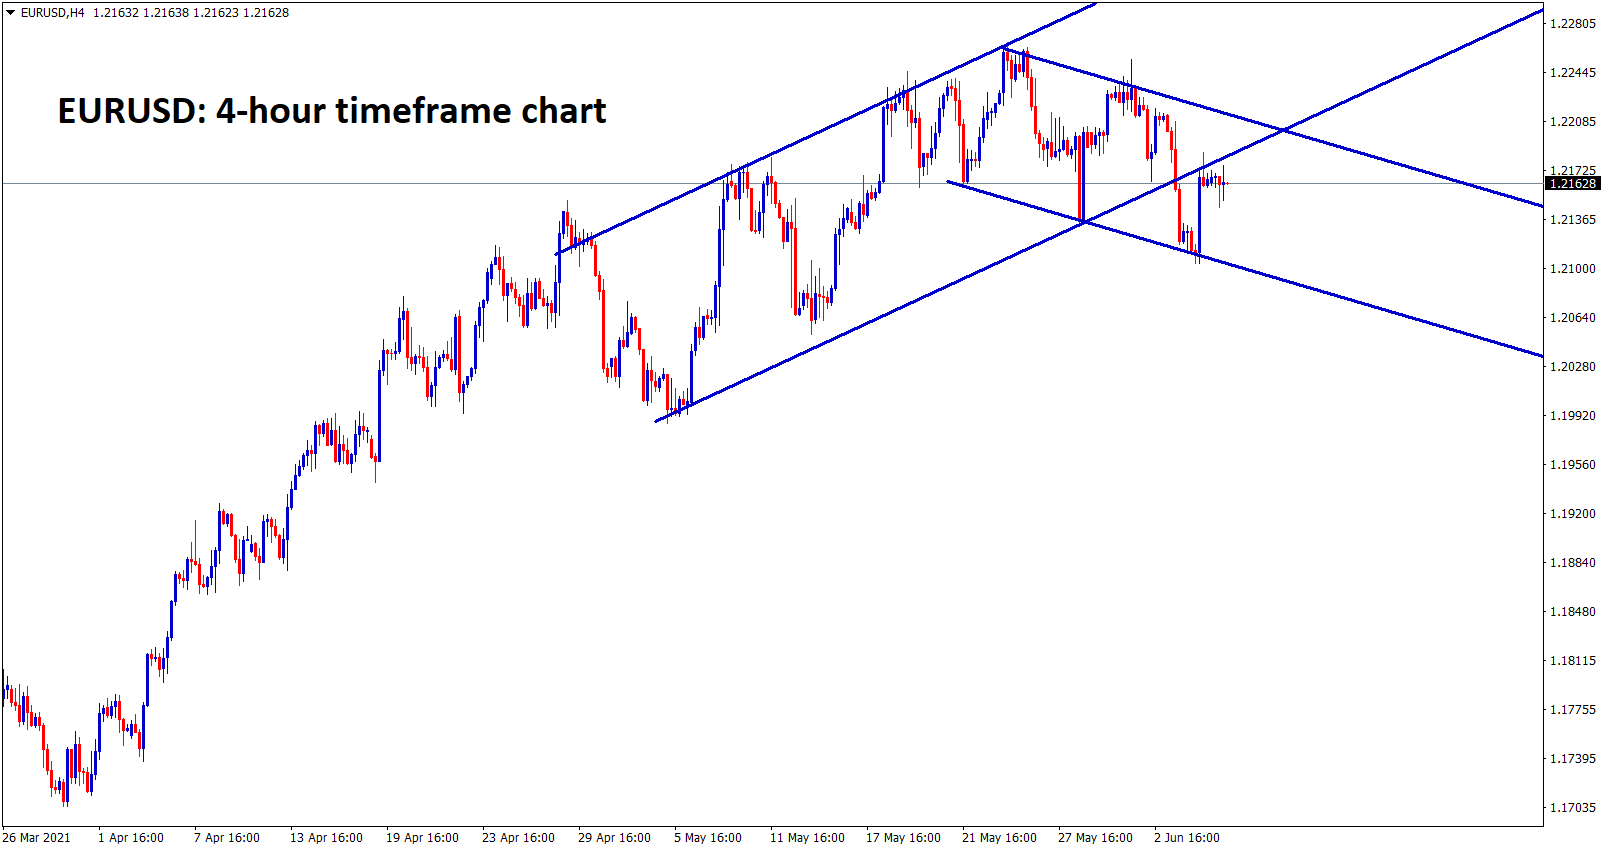 EURUSD is moving between the ascending and descending channels